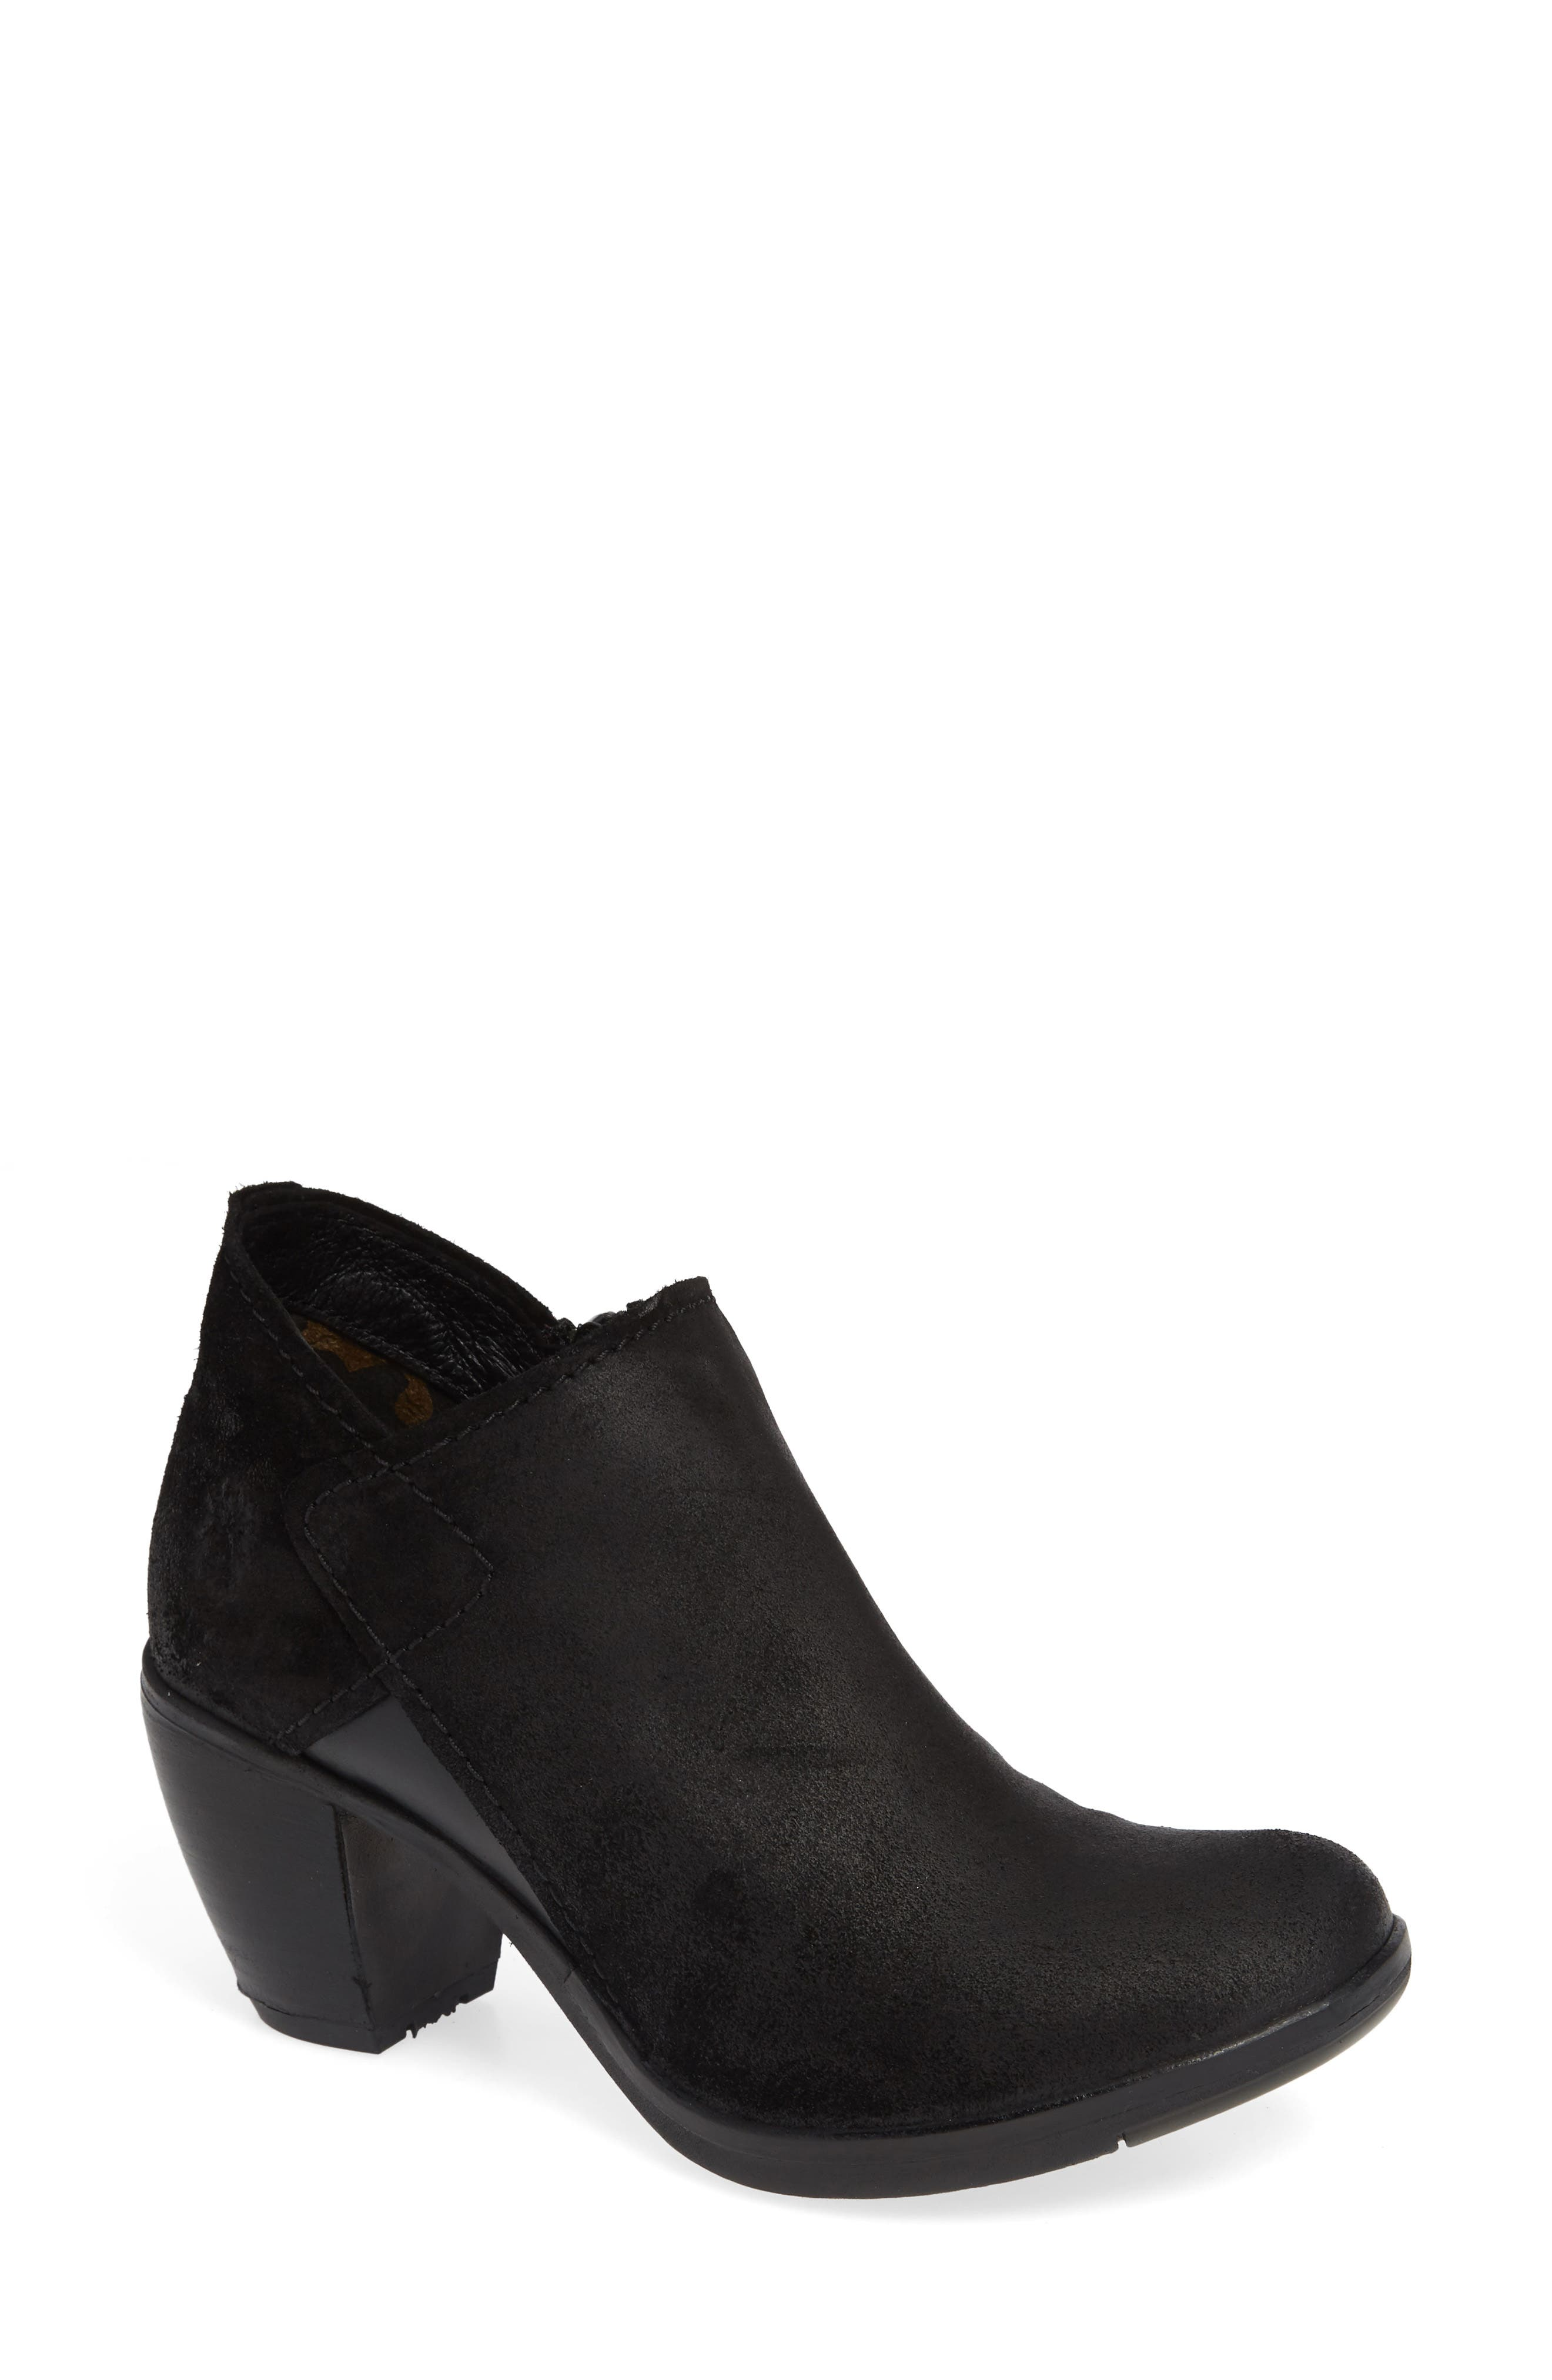 Fly London Hace Bootie - Black